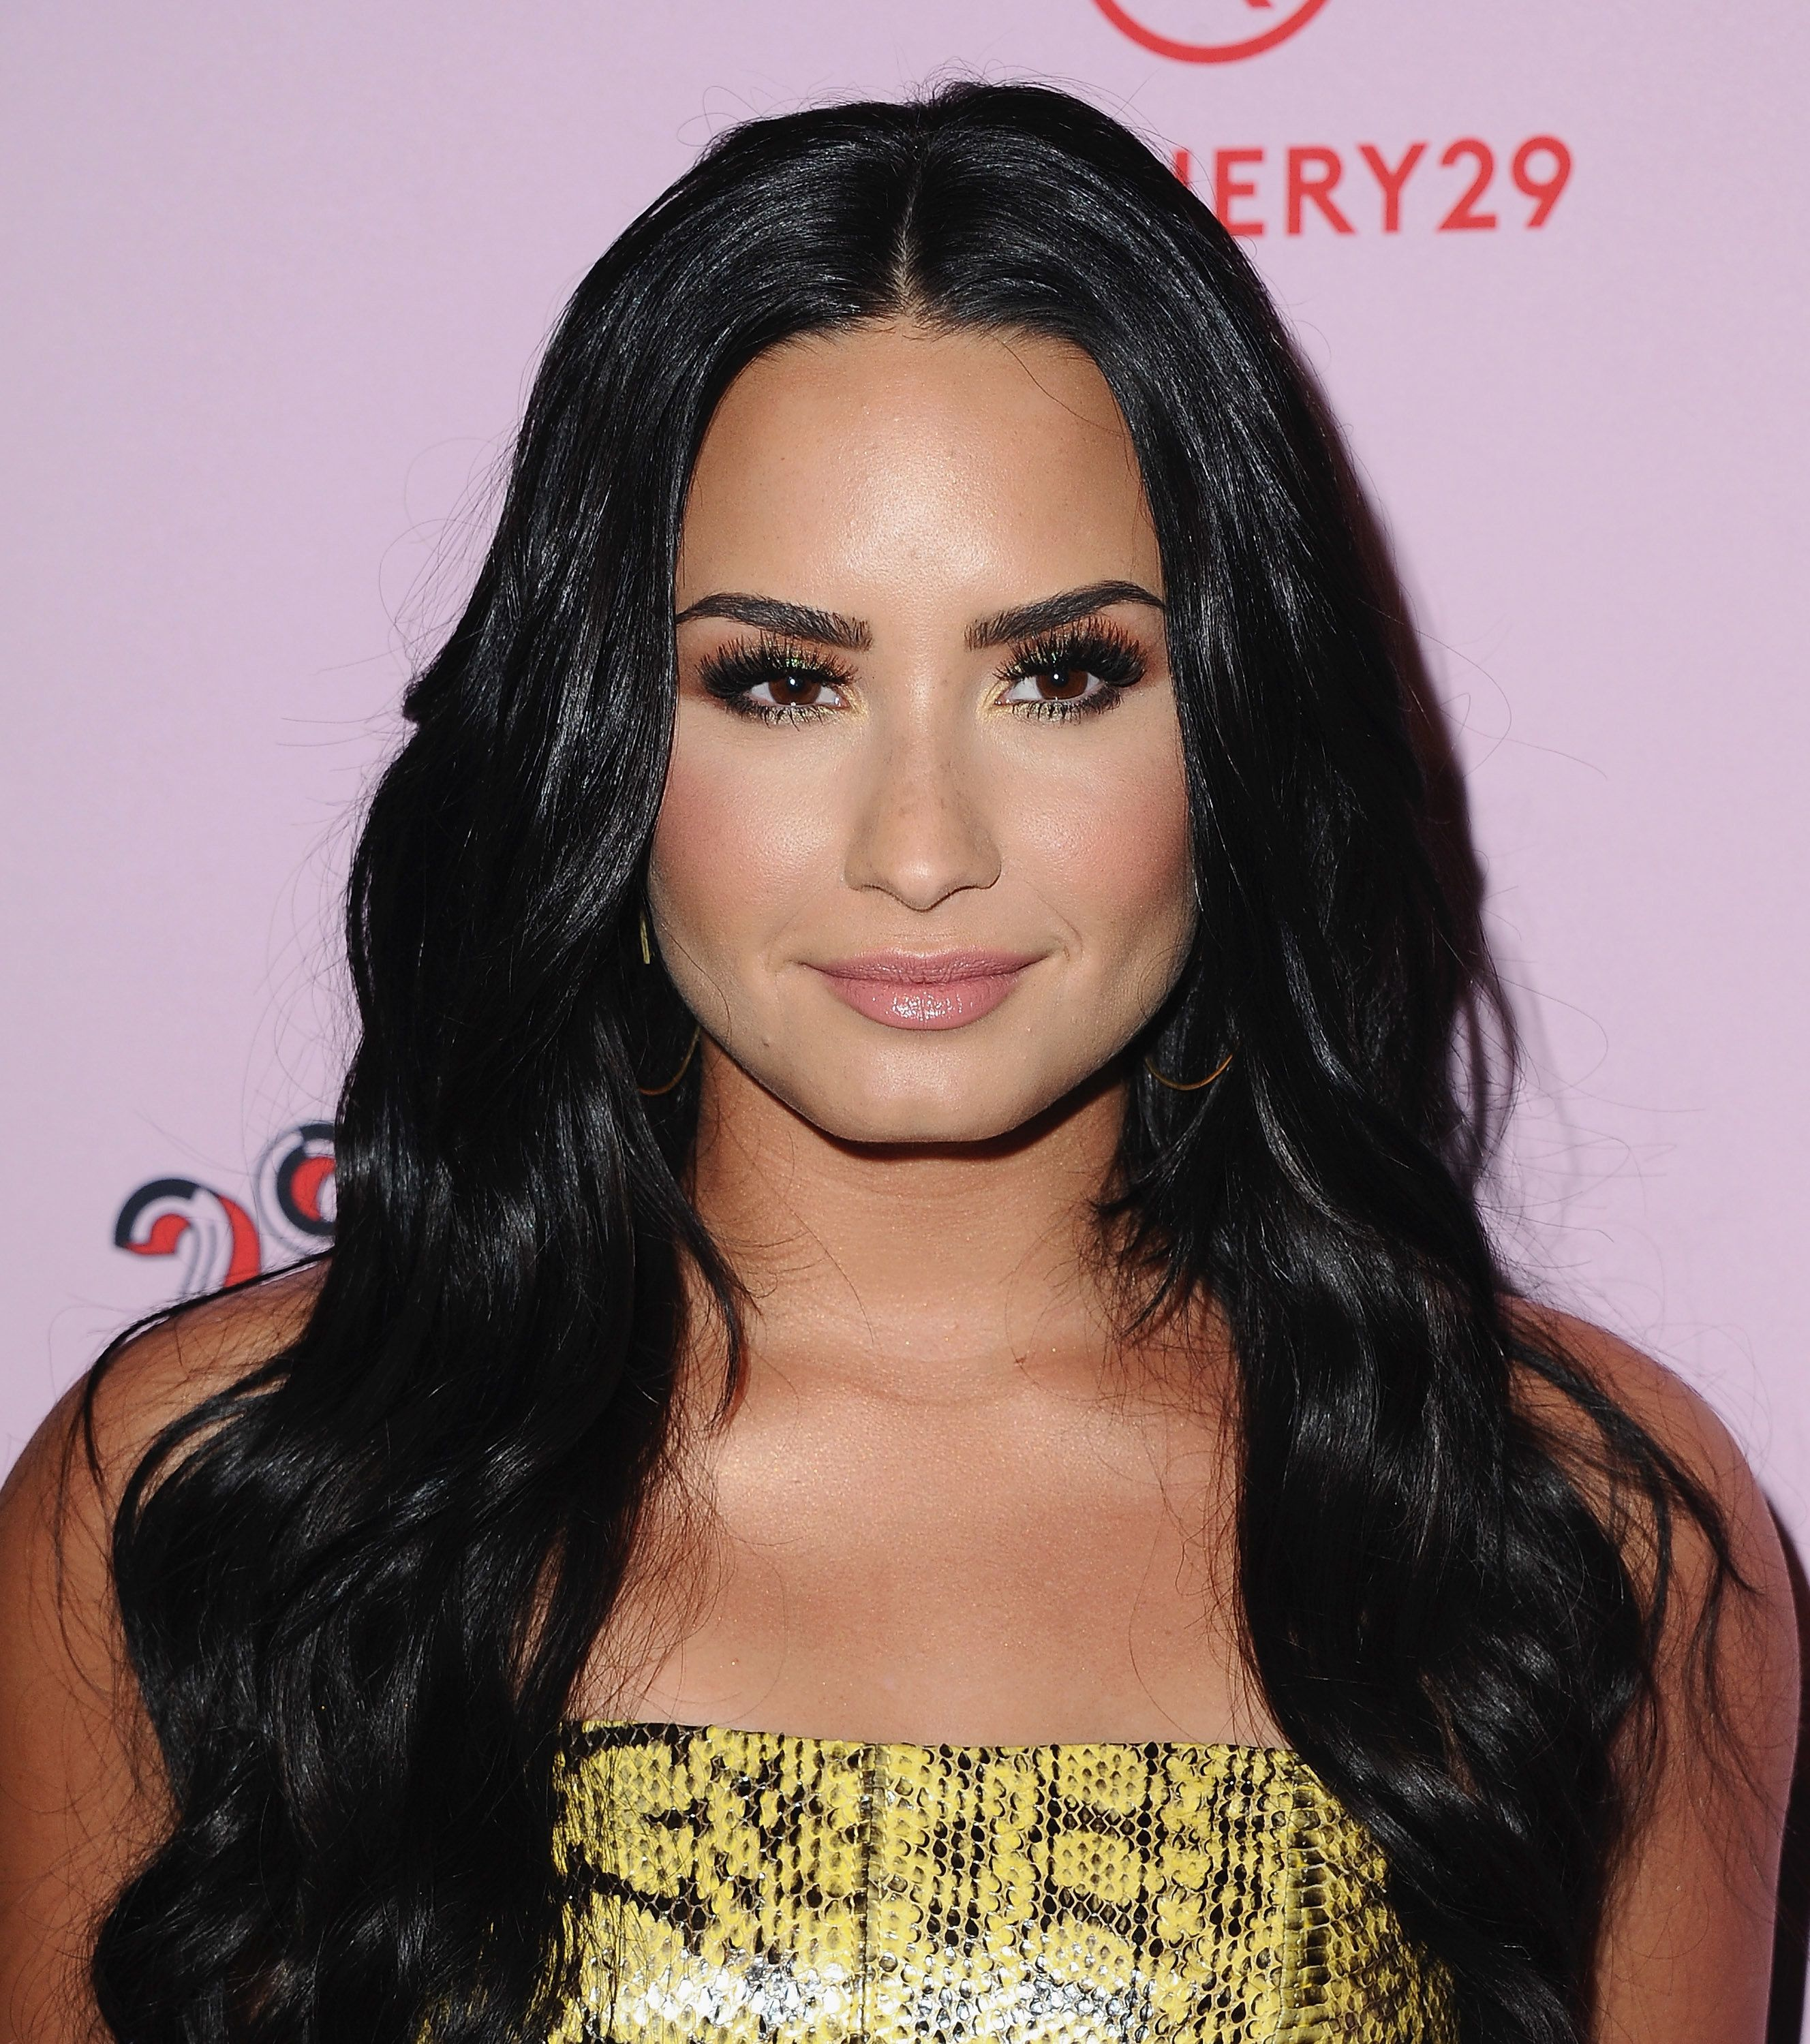 Demi Lovato was given naloxone before being taken to a hospital after an apparent drug overdose on July 24. Although nal